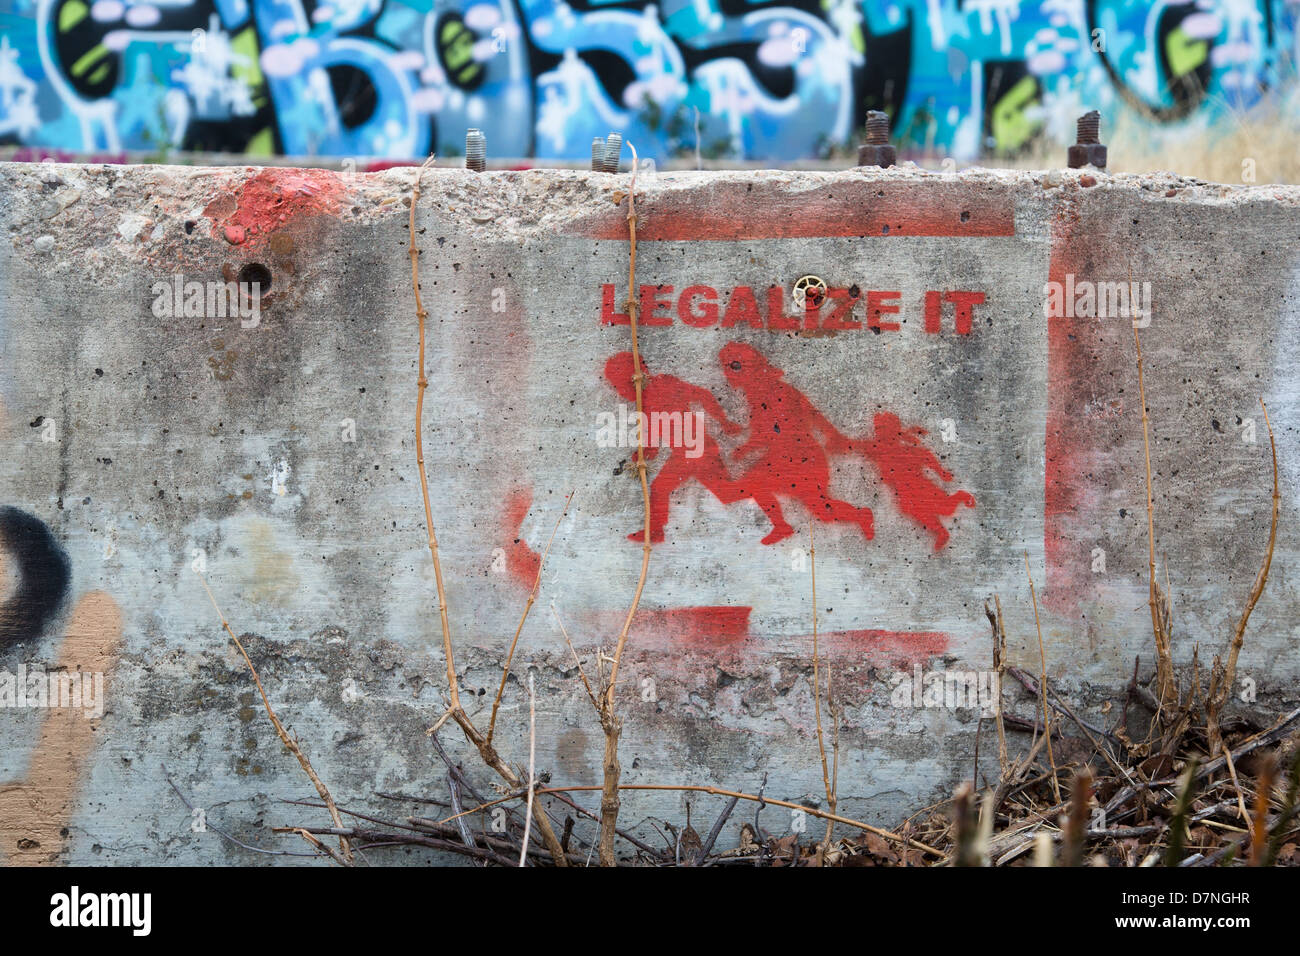 'Legalize it' stencil graffiti art in Austin, Texas - Stock Image